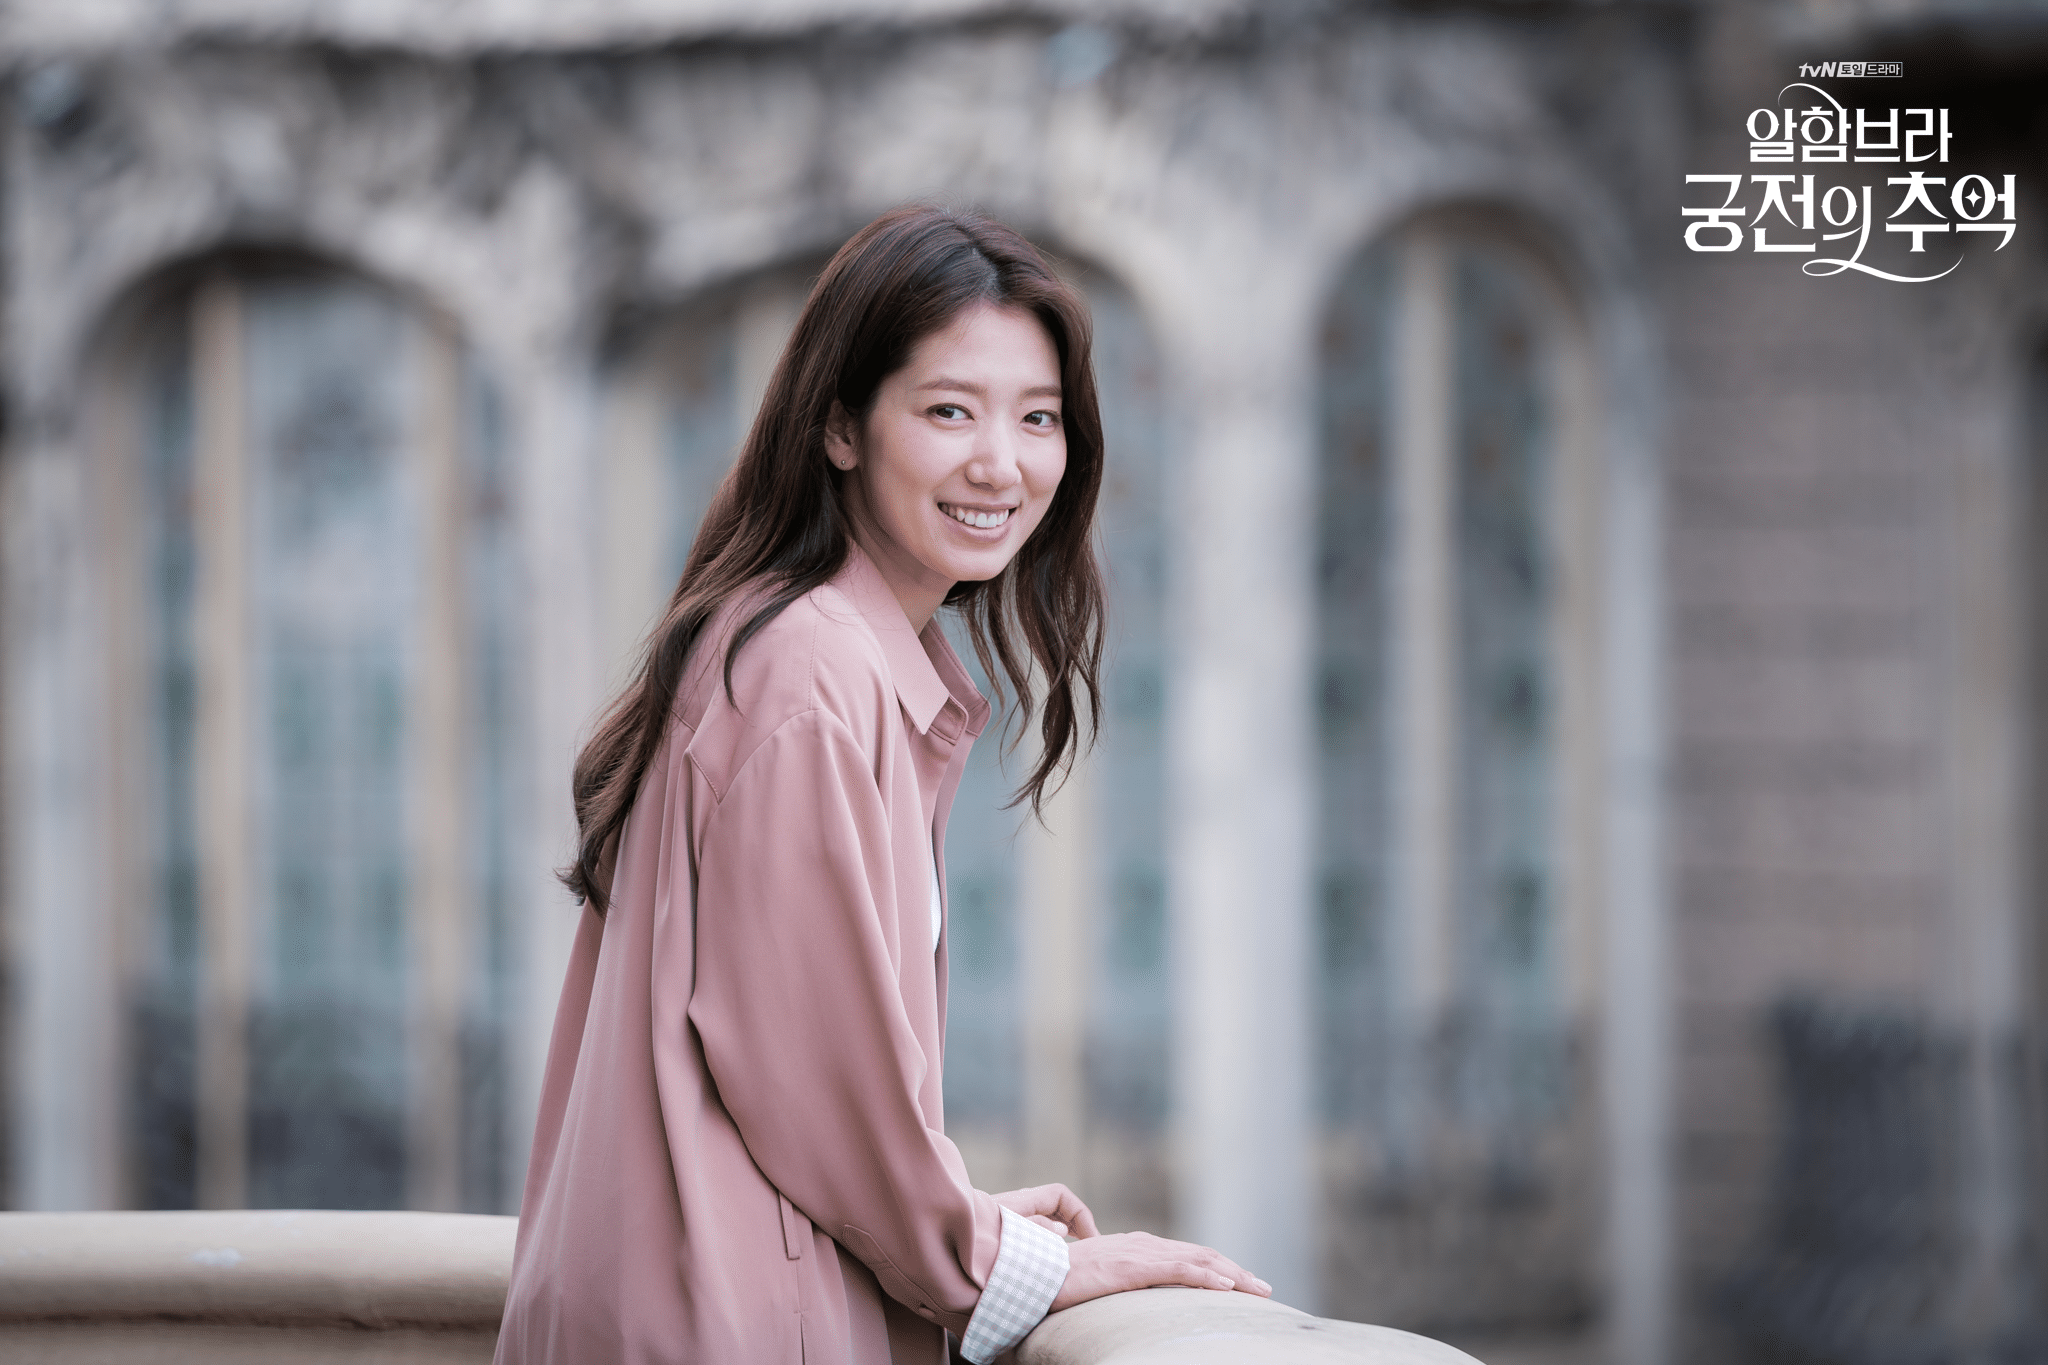 Memories-of-the-Alhambra-park-shin-hye-41709473-2048-1365